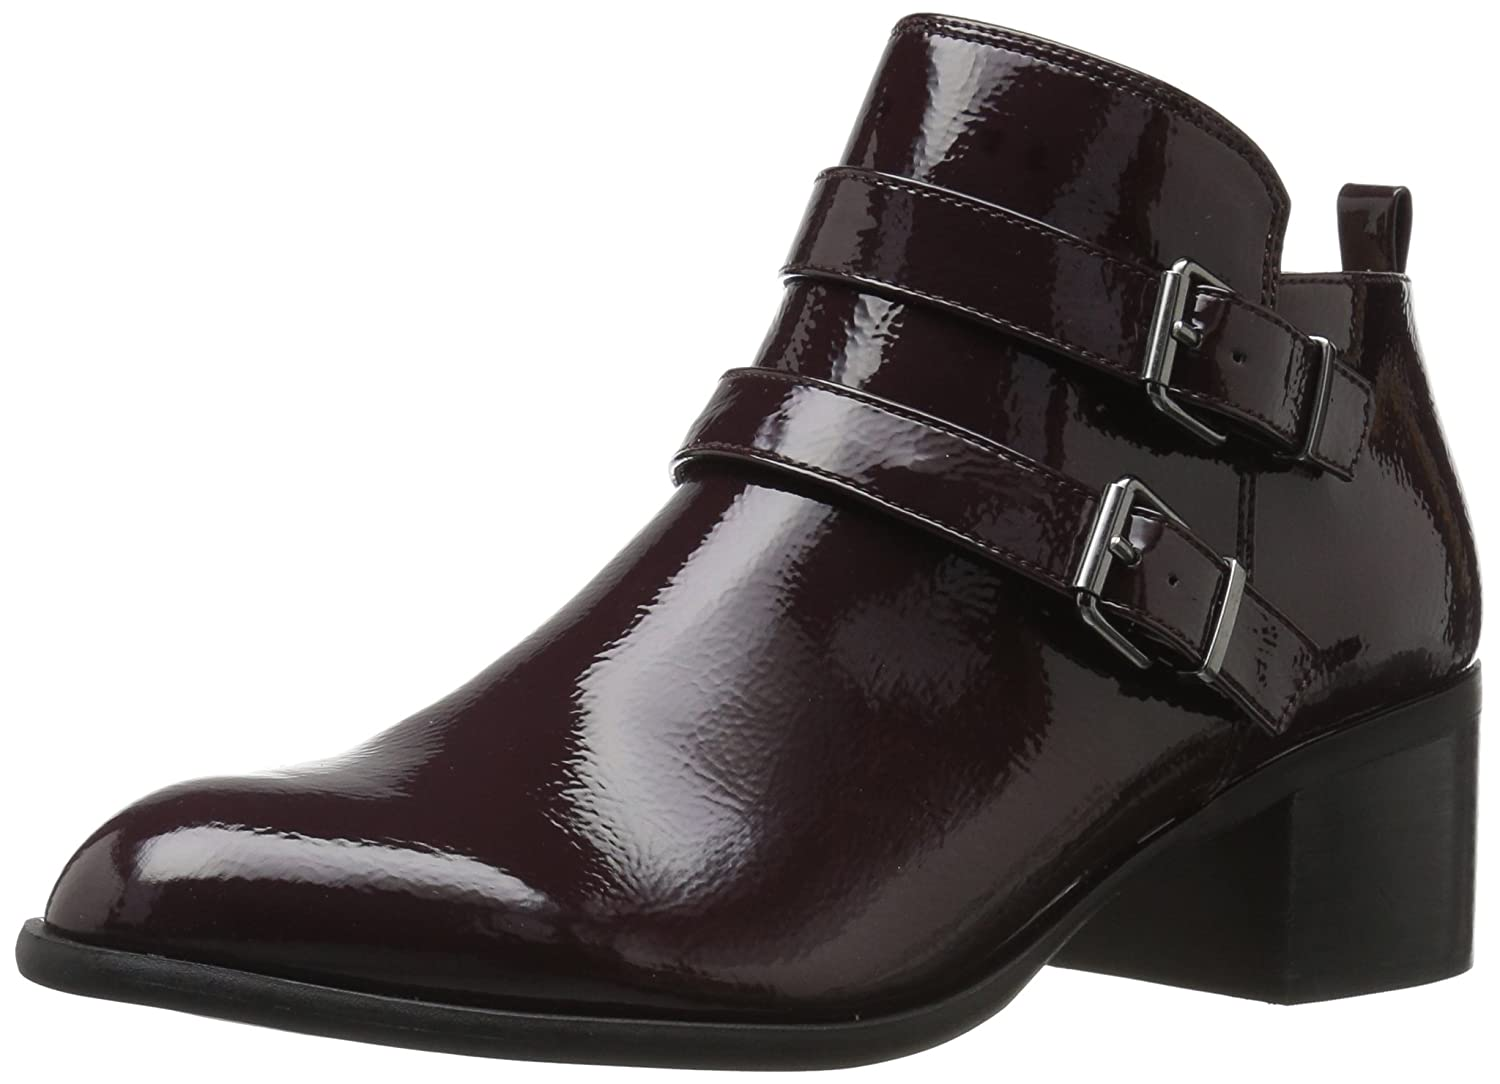 Franco Sarto Women's Raina Ankle Boot B07193LS77 8 W US|Dark Burgundy